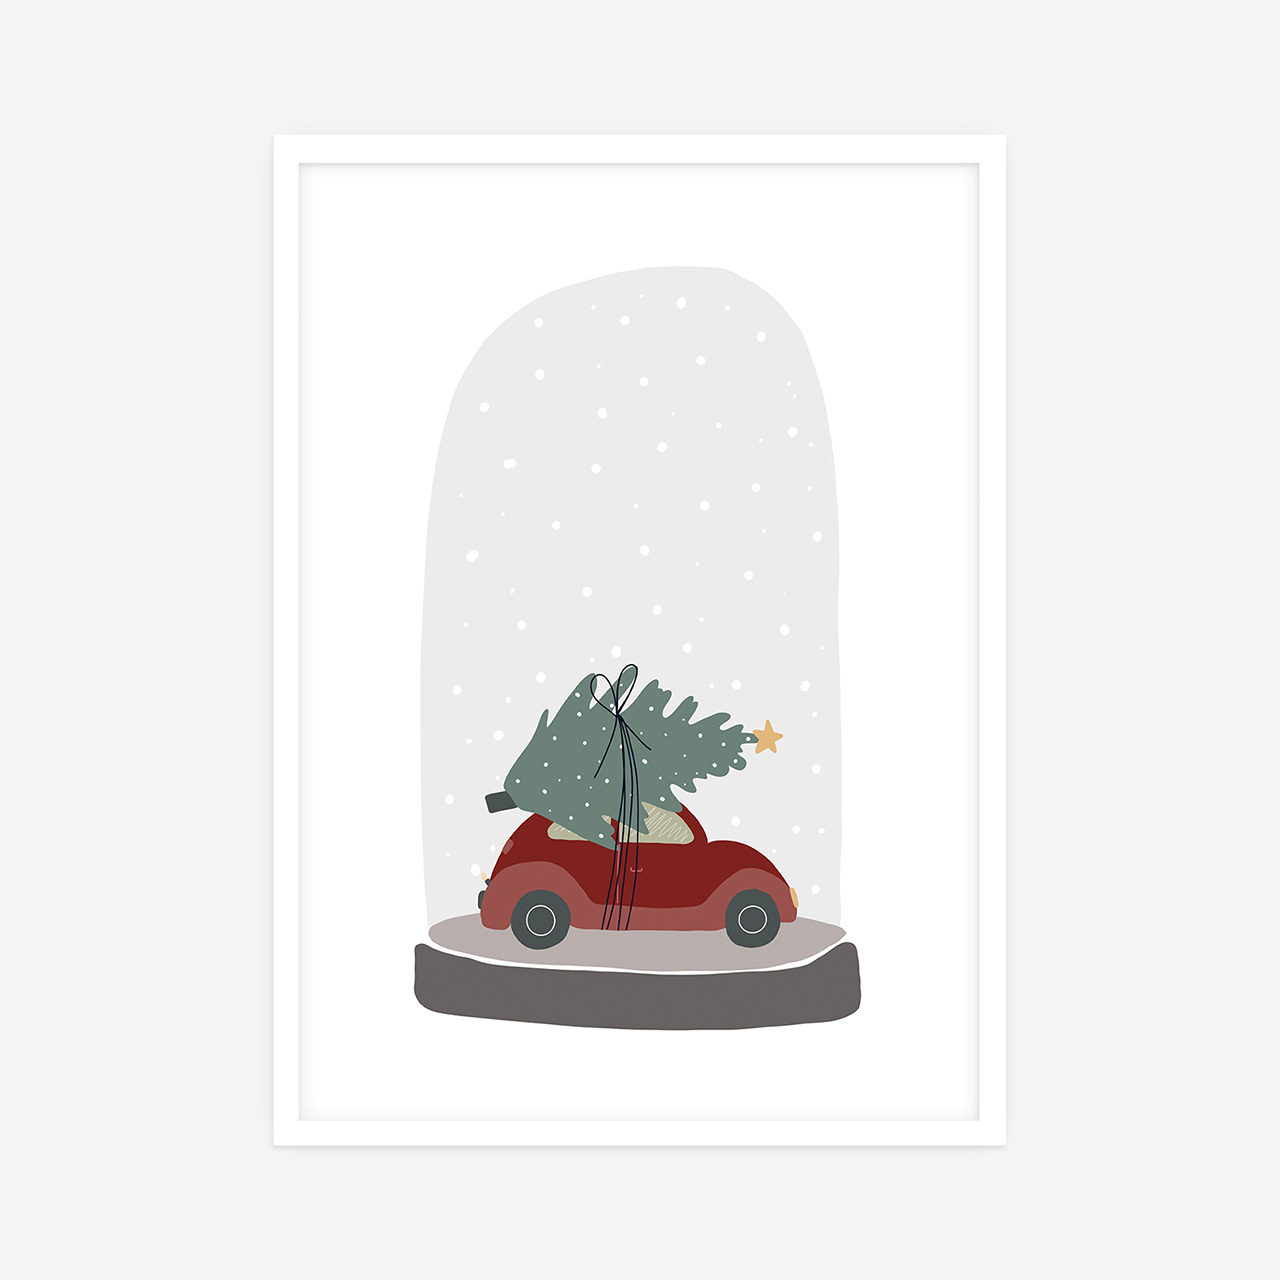 Carrying Christmas Tree poster